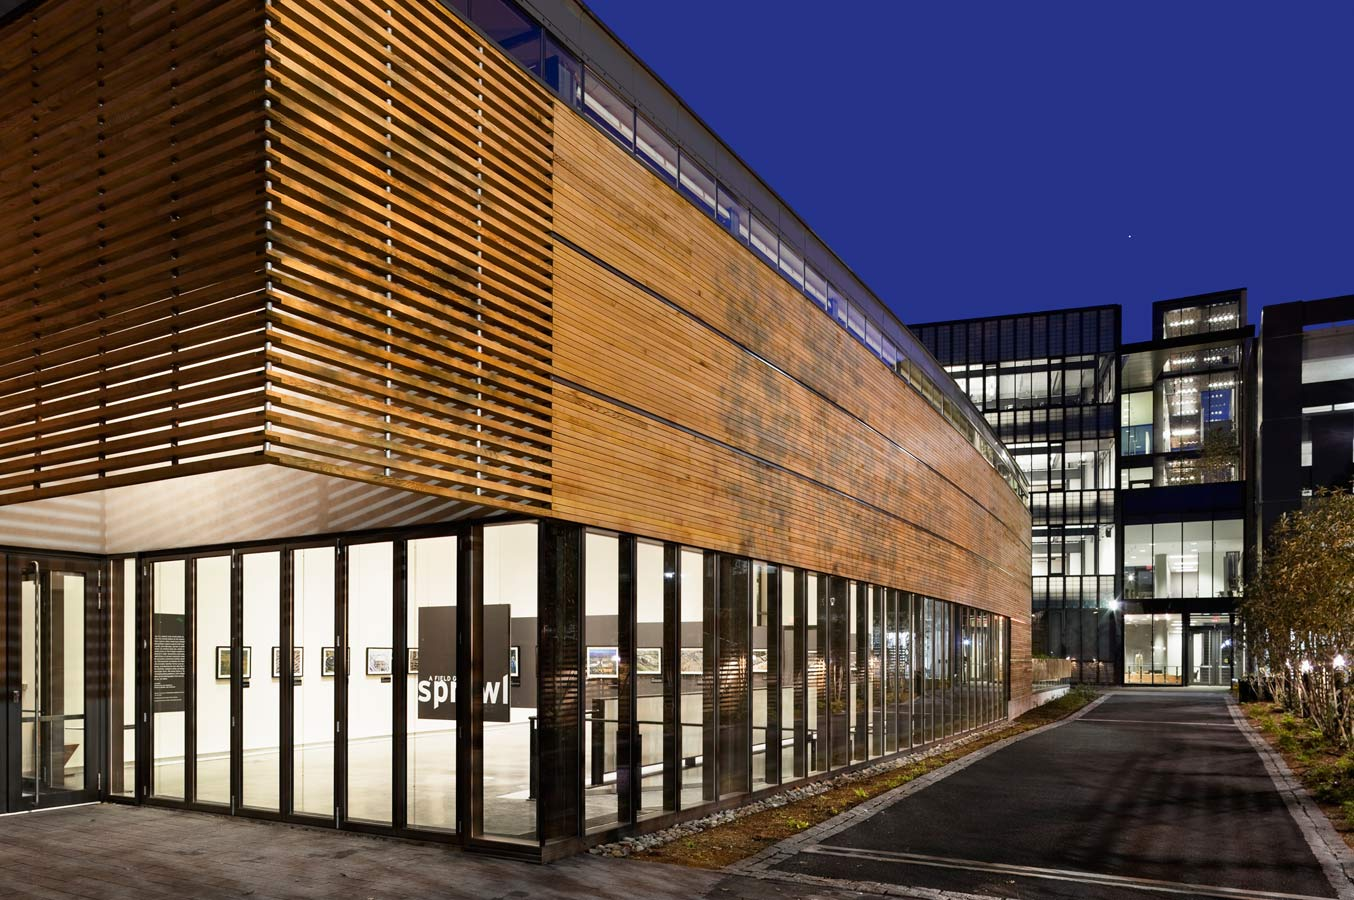 <p>The gallery was extracted from the sculpture building and placed along Edgewood Avenue to engage with the city of New Haven at the edge of campus. The gallery building is clad in glass and reclaimed western red cedar and is designed to blend with the historic houses that line this street. <br><small>&copy; Peter Aaron/OTTO</small></p>